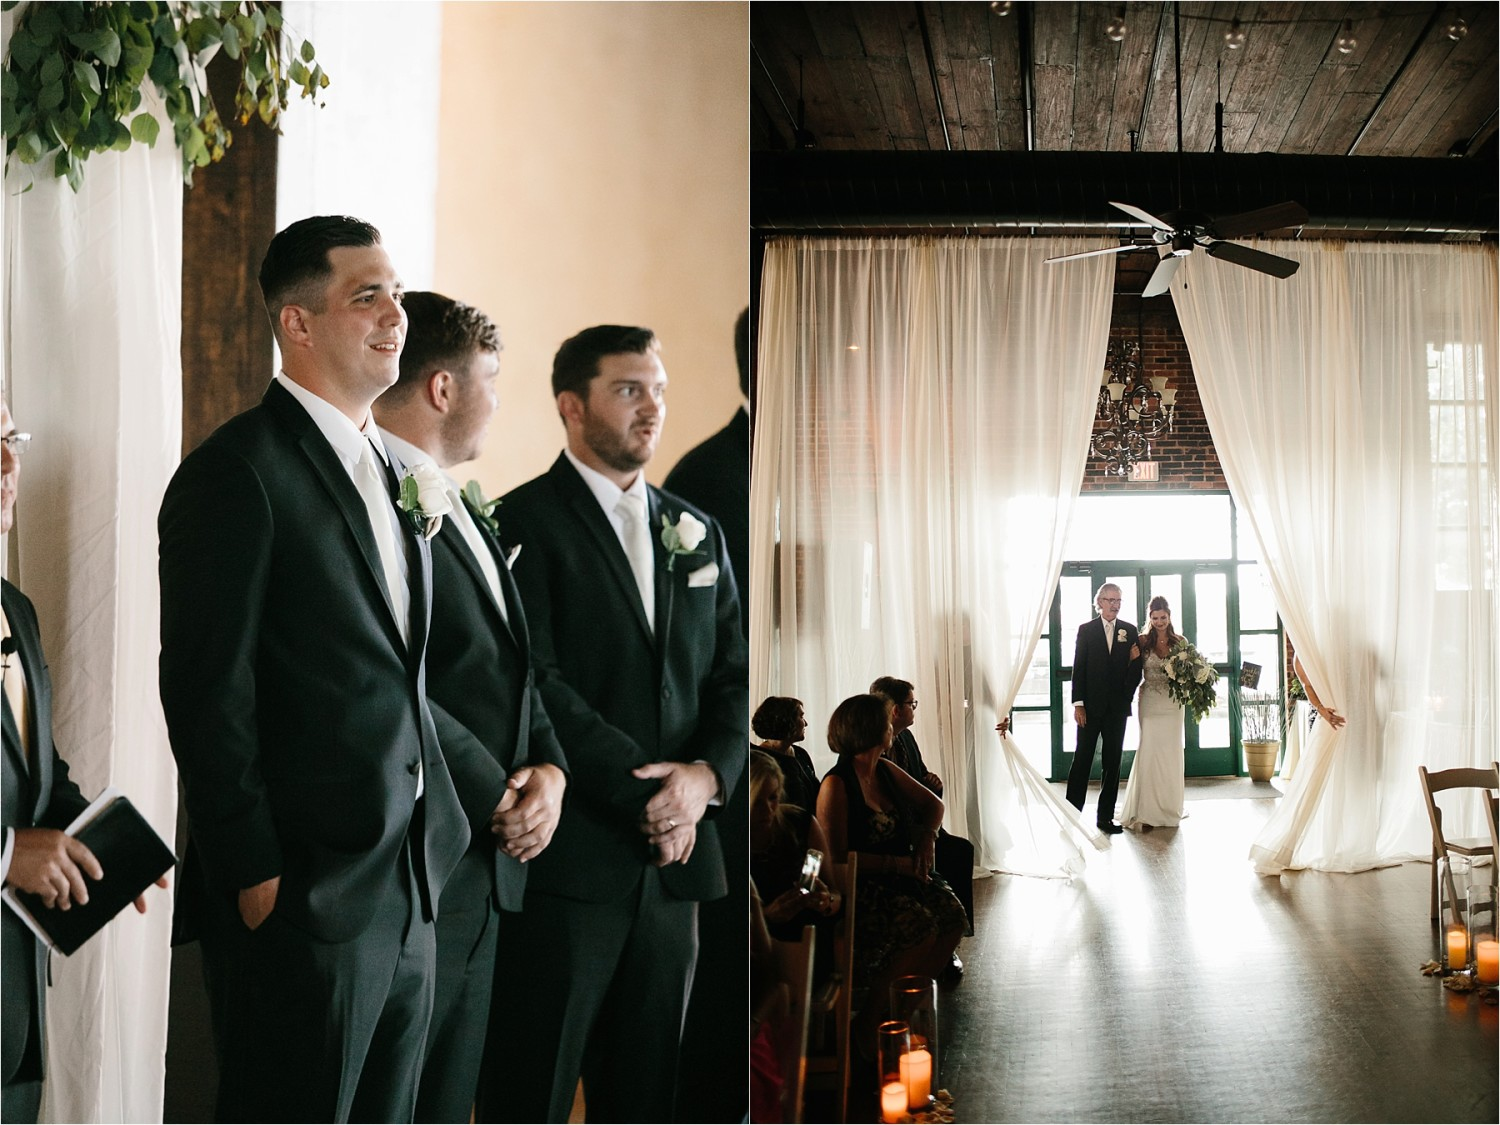 Holly + Jordan __ a black, gold, and greenery organic wedding at The Phoenix Ballroom in Waco, TX by North Texas Wedding Photographer Rachel Meagan Photography __ 58